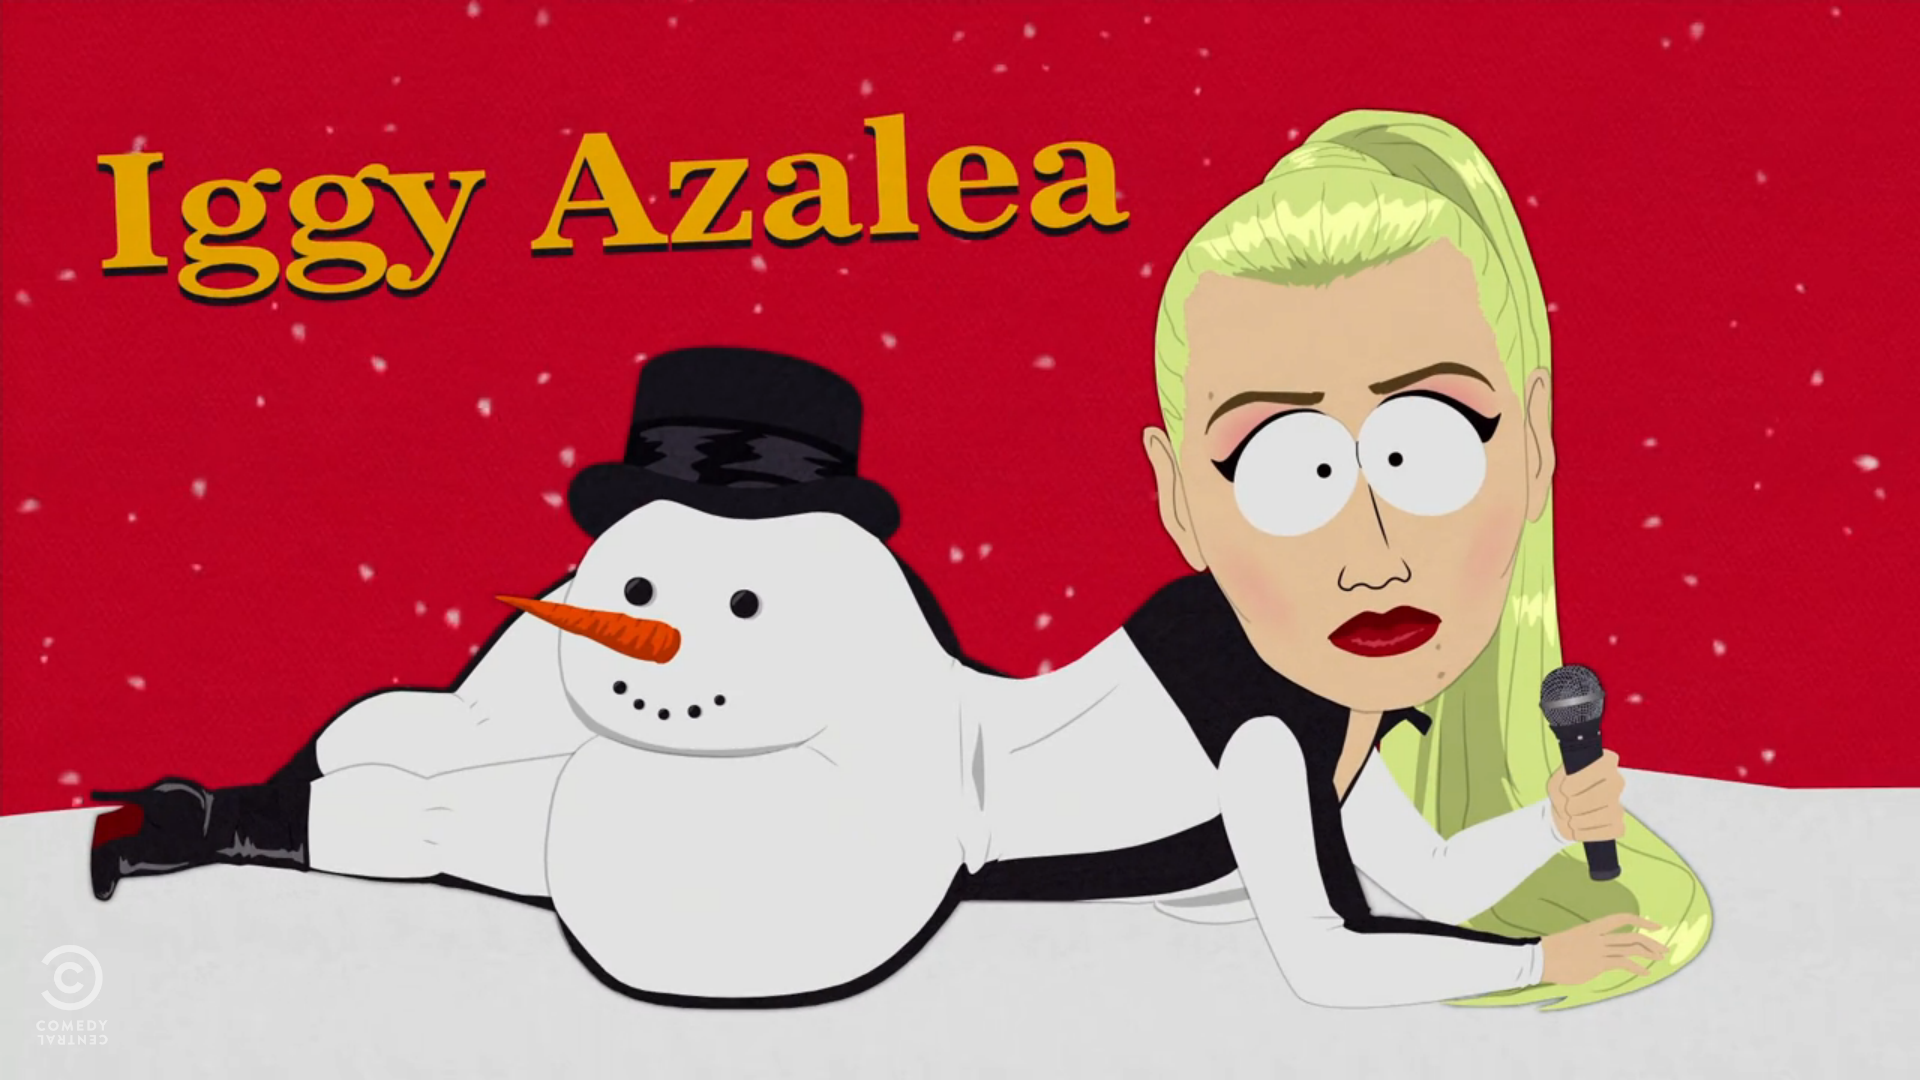 azalea chat sites Watch having a chat with iggy azalea, a iggy azalea video on stuffpoint she's the best thing to come out of australia since fosters and she's guaranteed to cause a storm wherever she is.